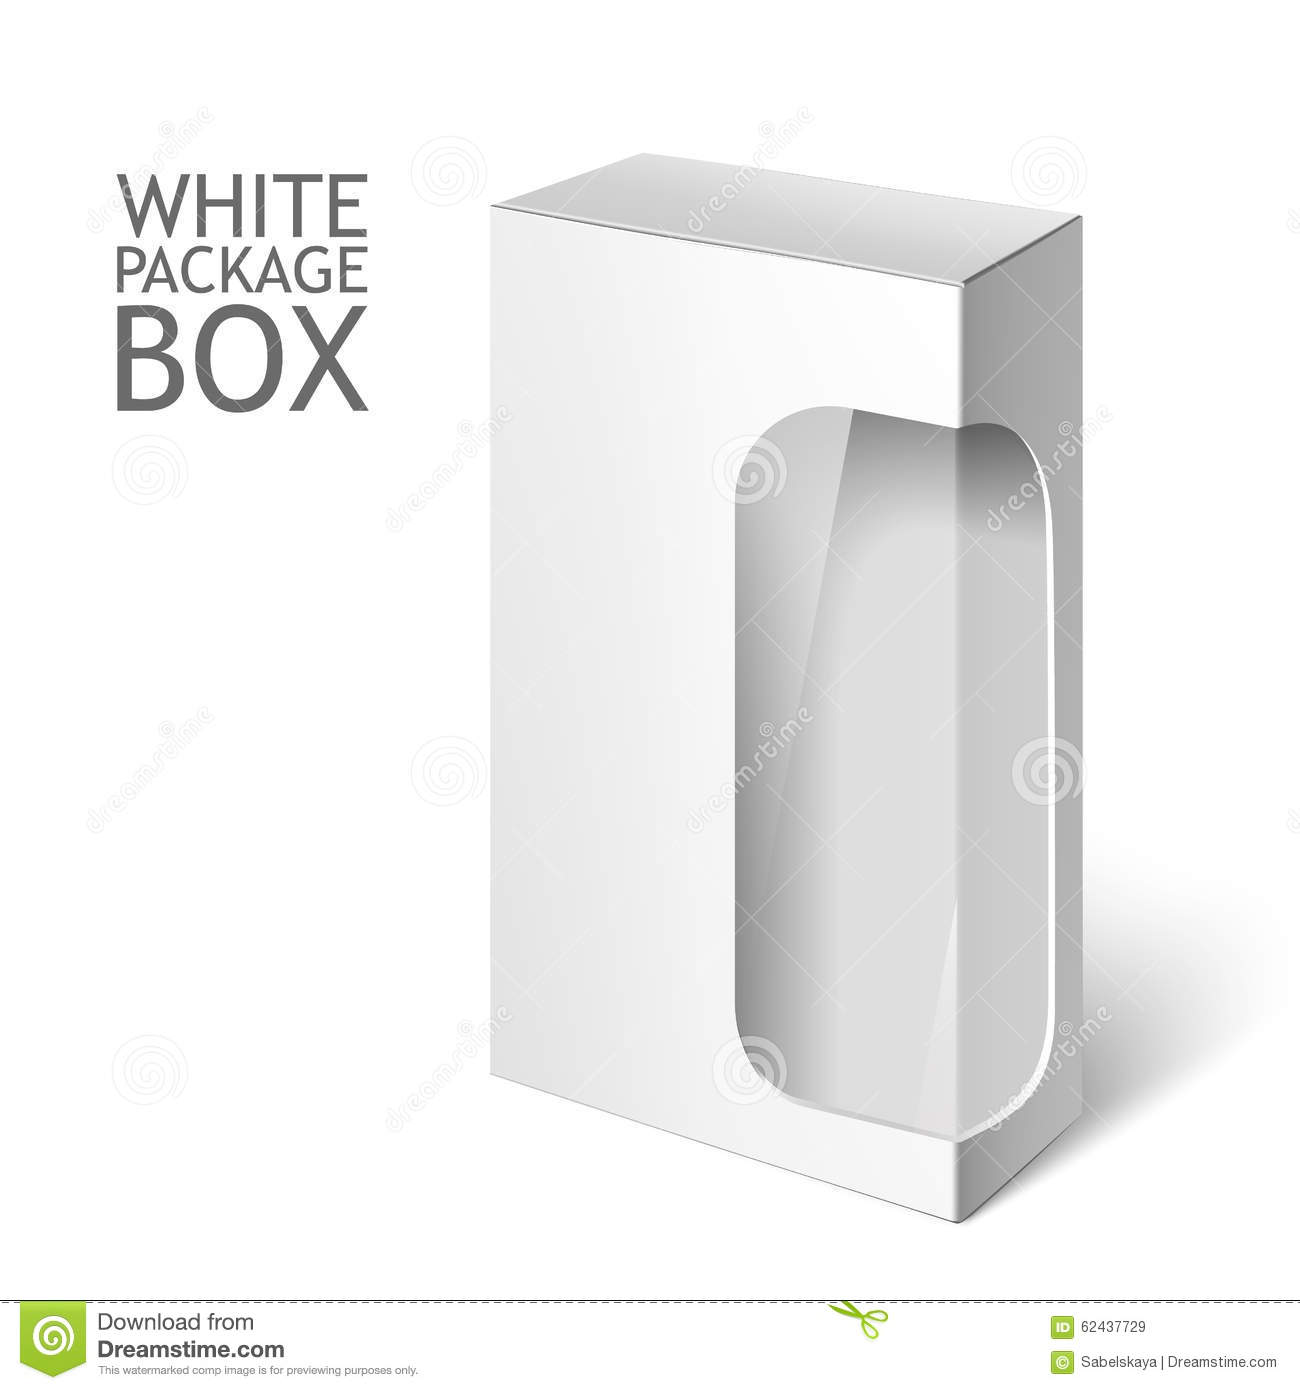 Room Design Free Software White Package Box With Window Mockup Template Stock